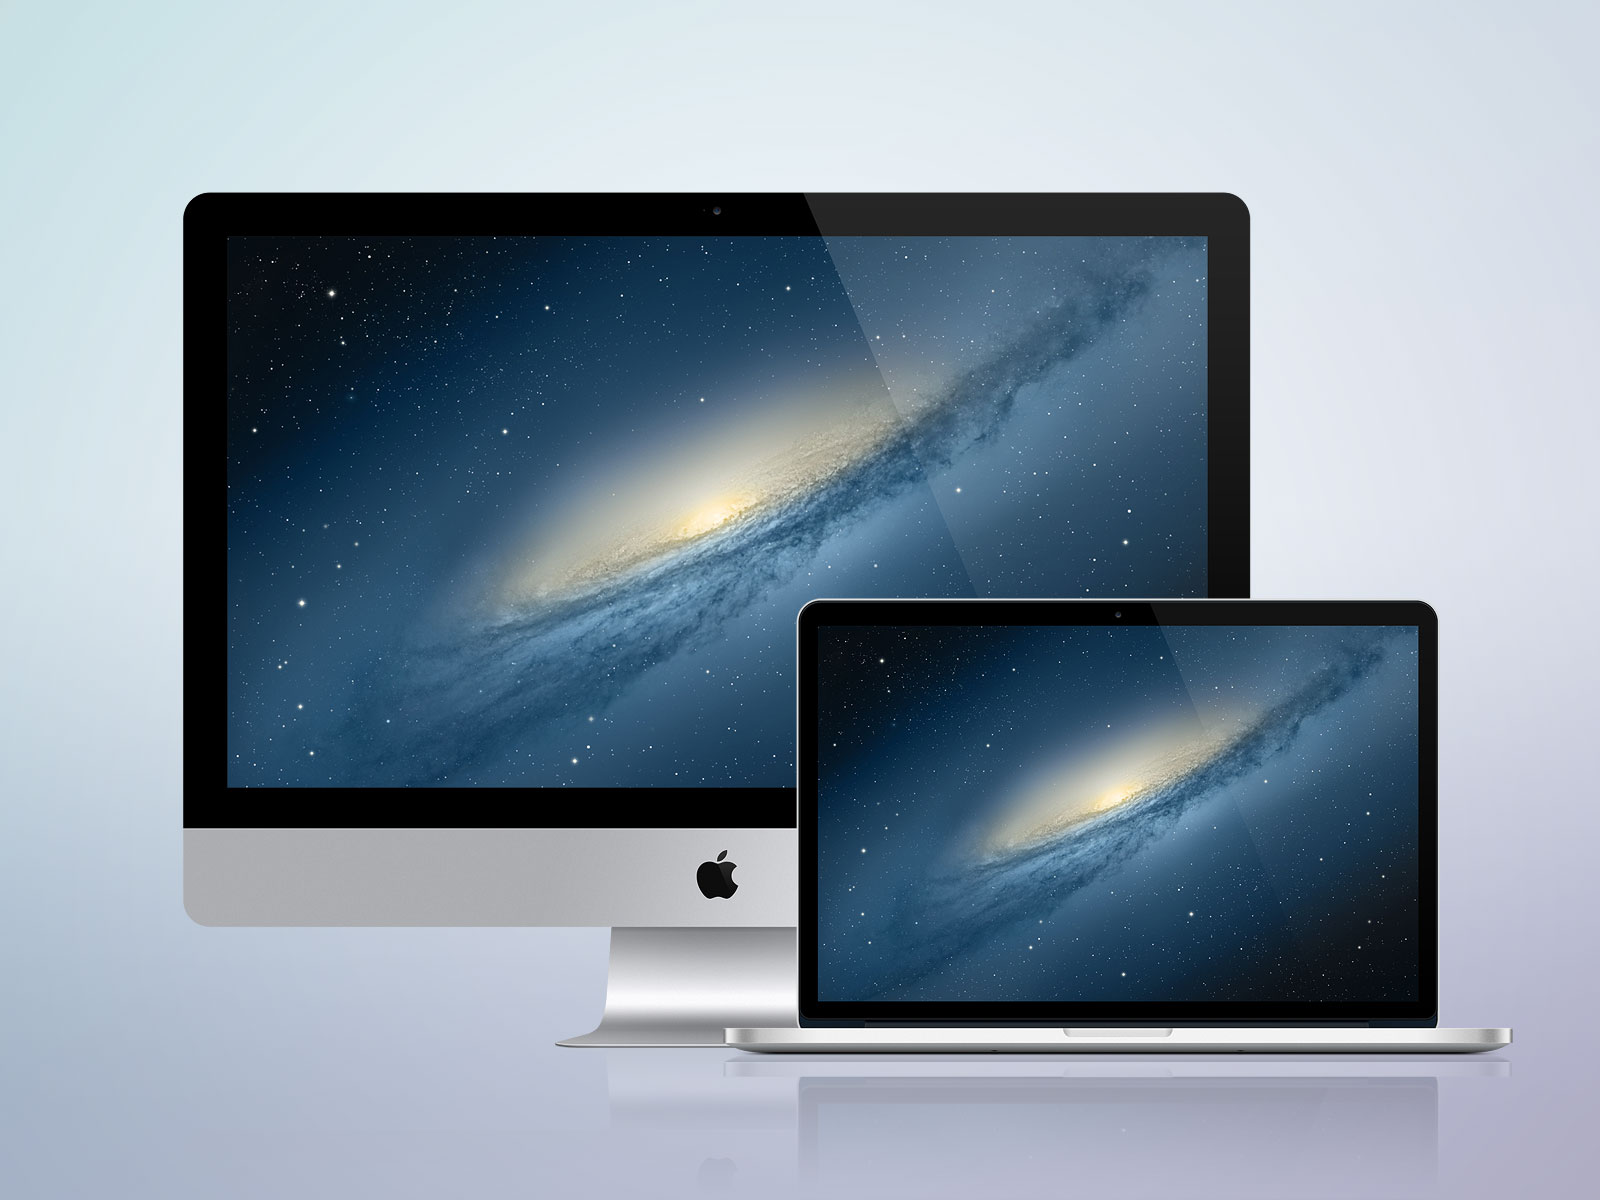 Photoshop Templates: 83+Best Free PSD Macbook Pro & Air And IMac Mockup